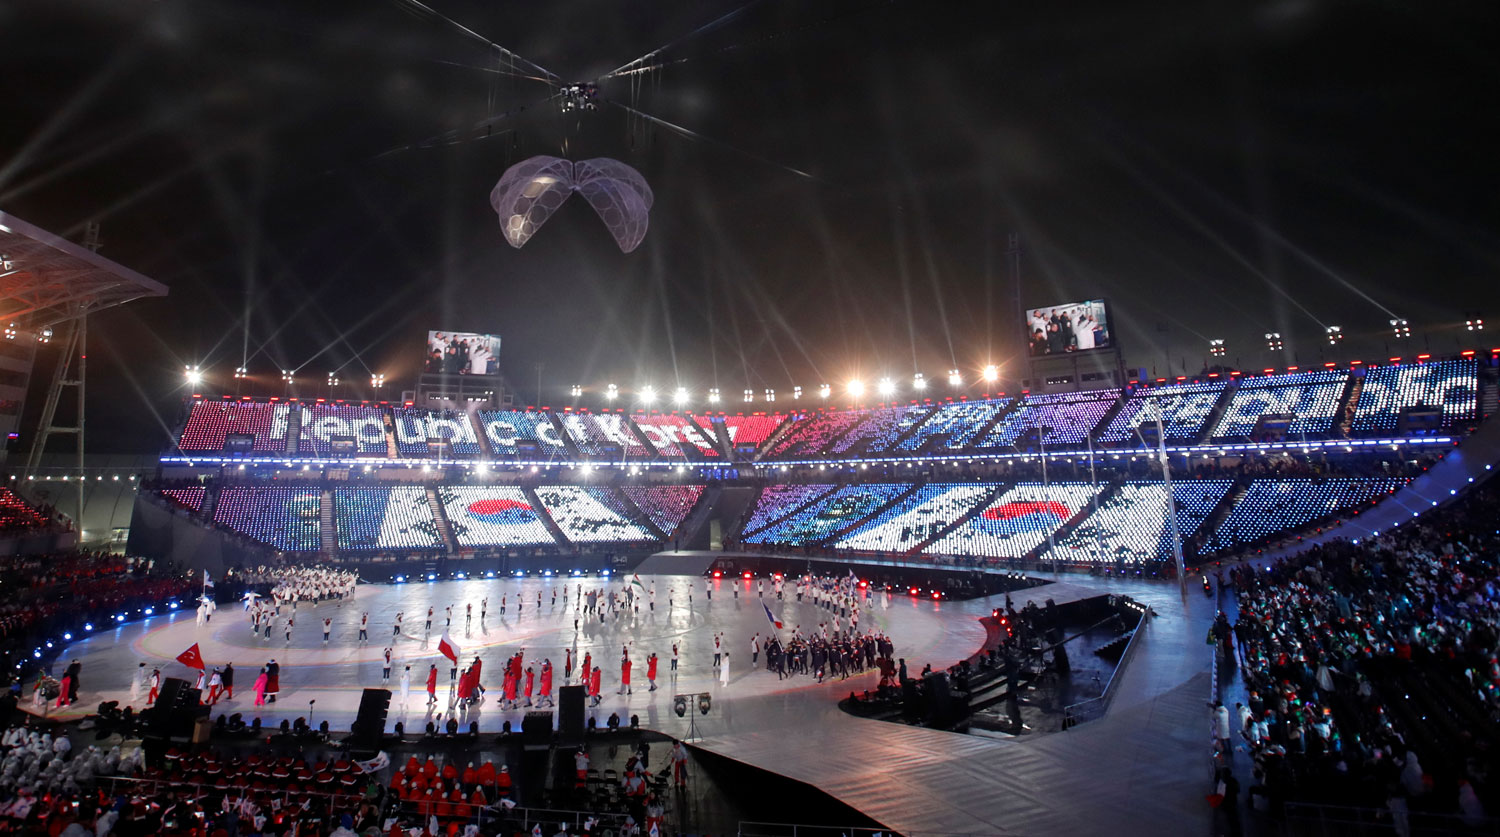 Pyeongchang 2018 Winter Paralympics - Opening ceremony - Pyeongchang Olympic Stadium - Pyeongchang, South Korea - March 9, 2018 - The delegation of South Korea enters the stadium during the opening ceremony. REUTERS/Carl Recine - RC1B645C0650